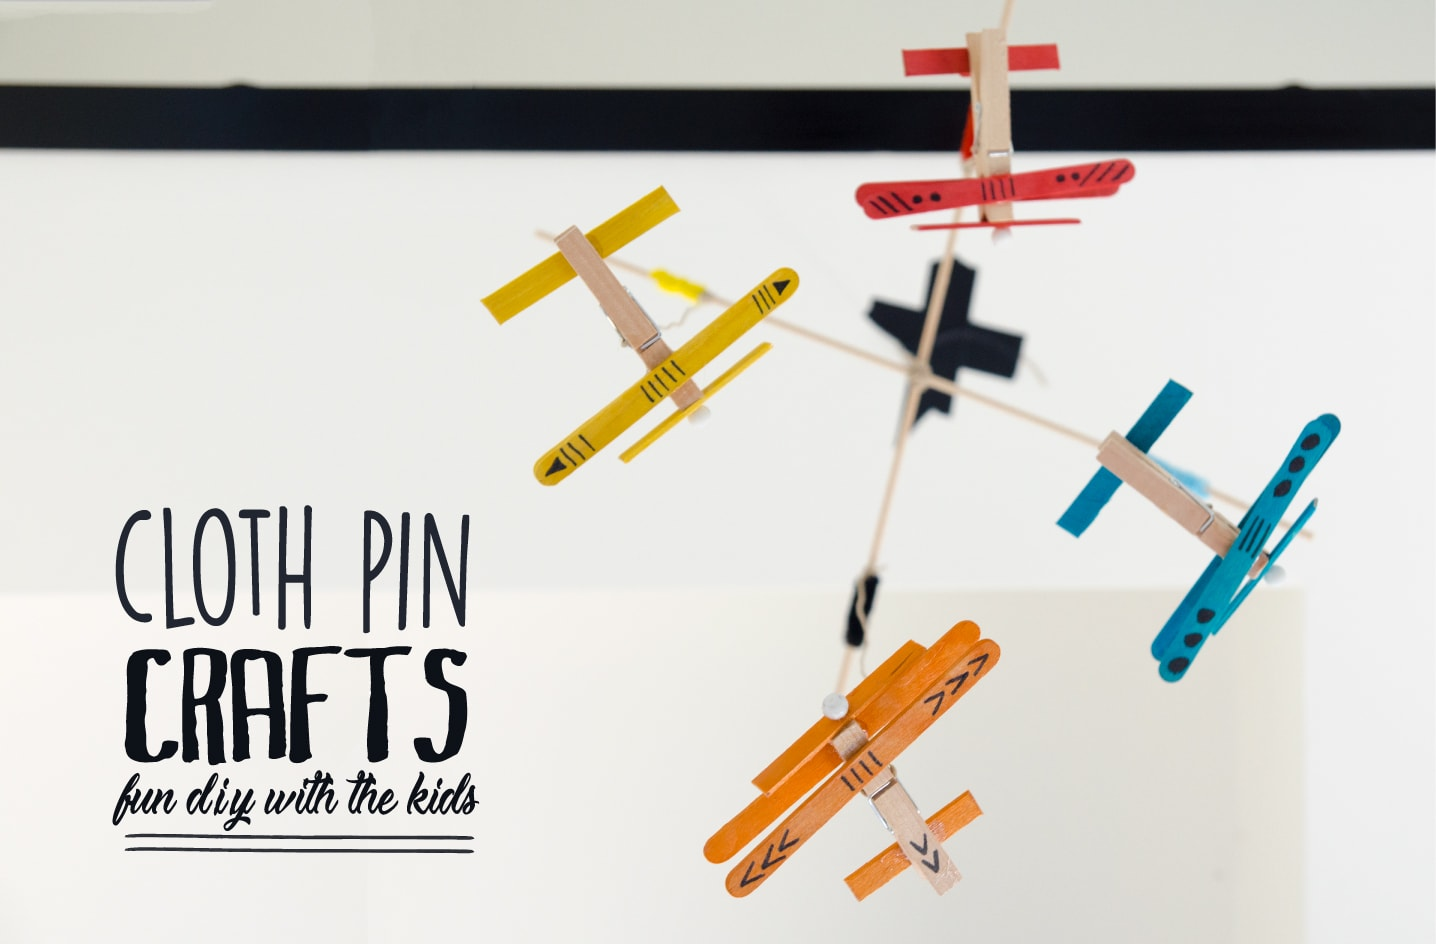 cloth pin crafts with kids